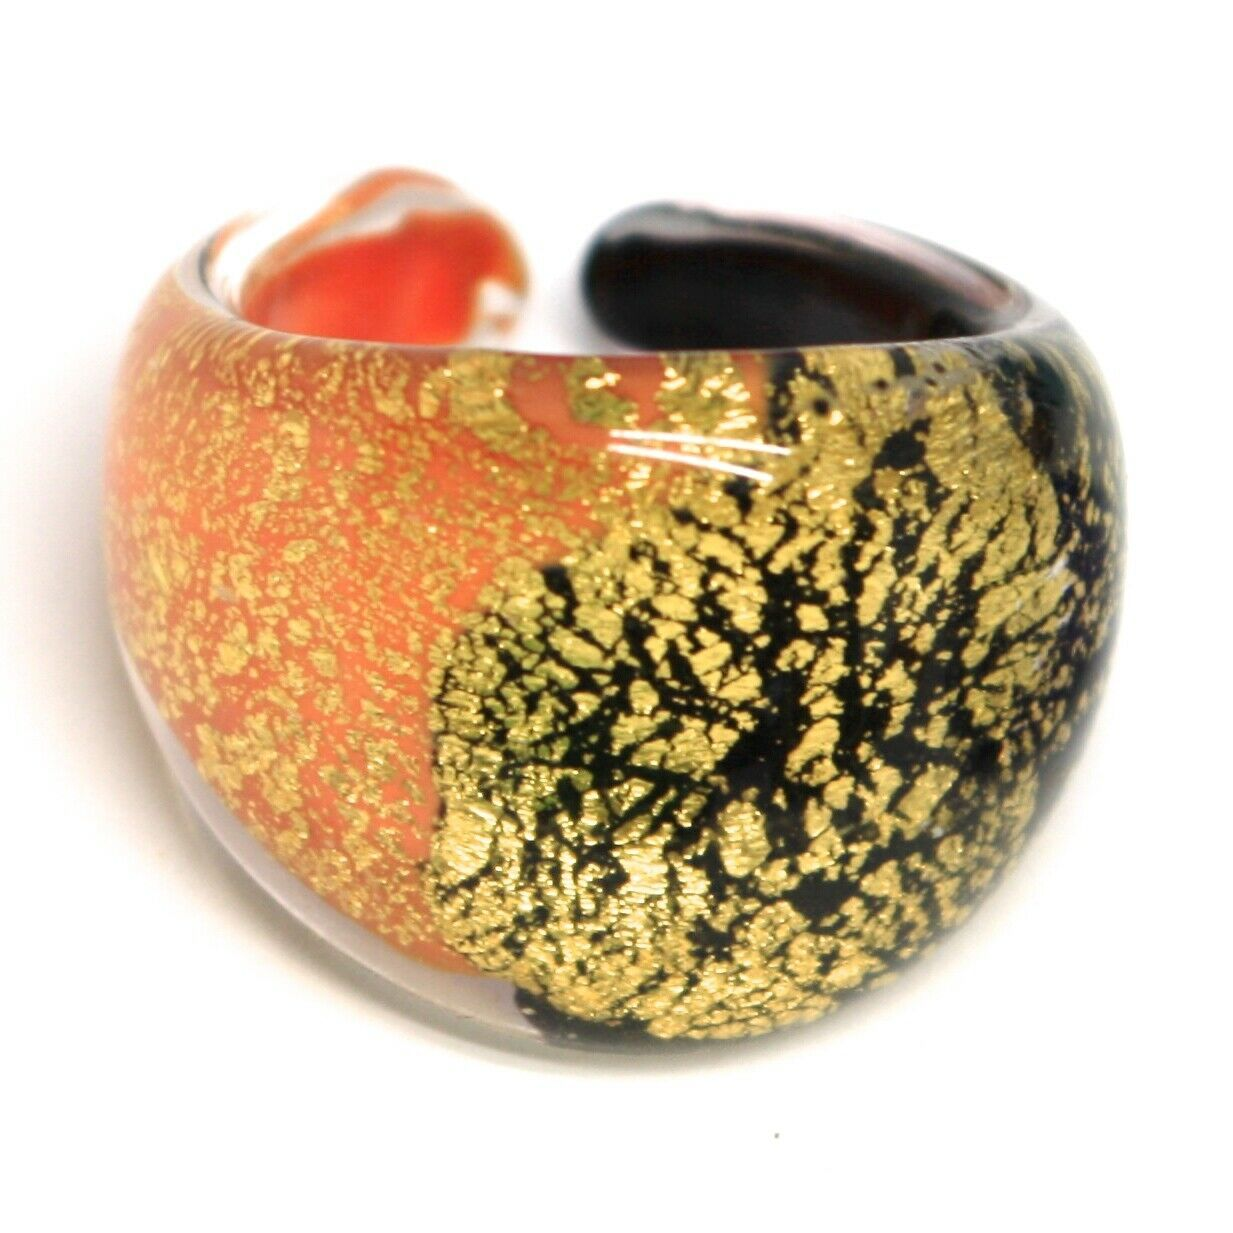 Ring Antica Murrina, Murano Glass, Black Orange, Leaf Golden, Convex